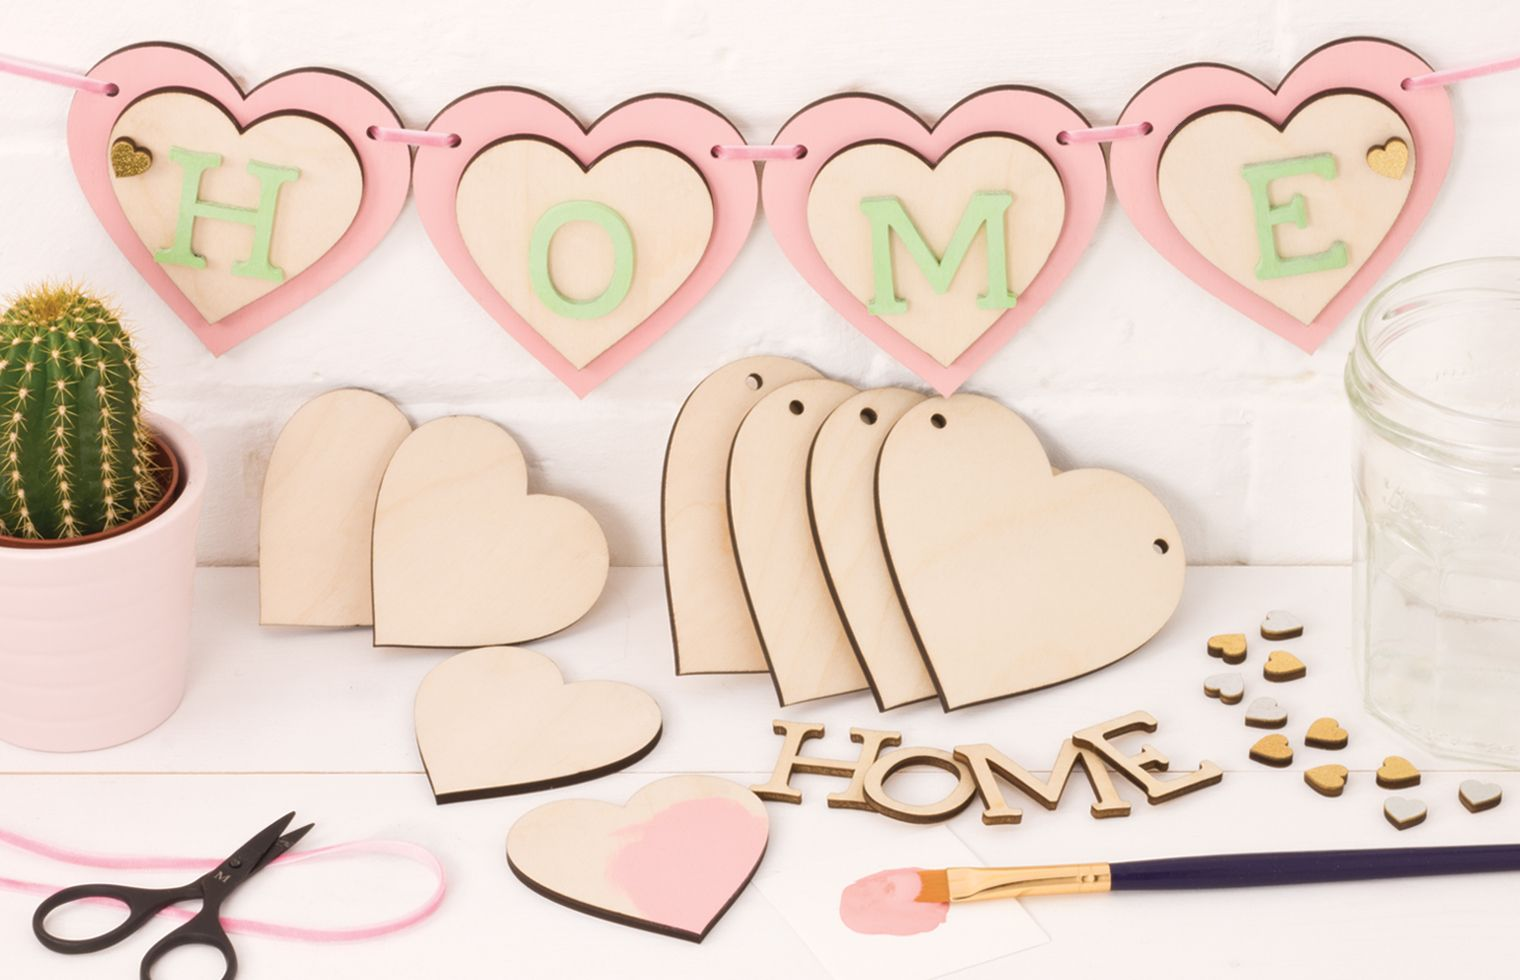 Inspiration Wooden Heart Home Bunting Wooden Hearts Crafts Wooden Shapes